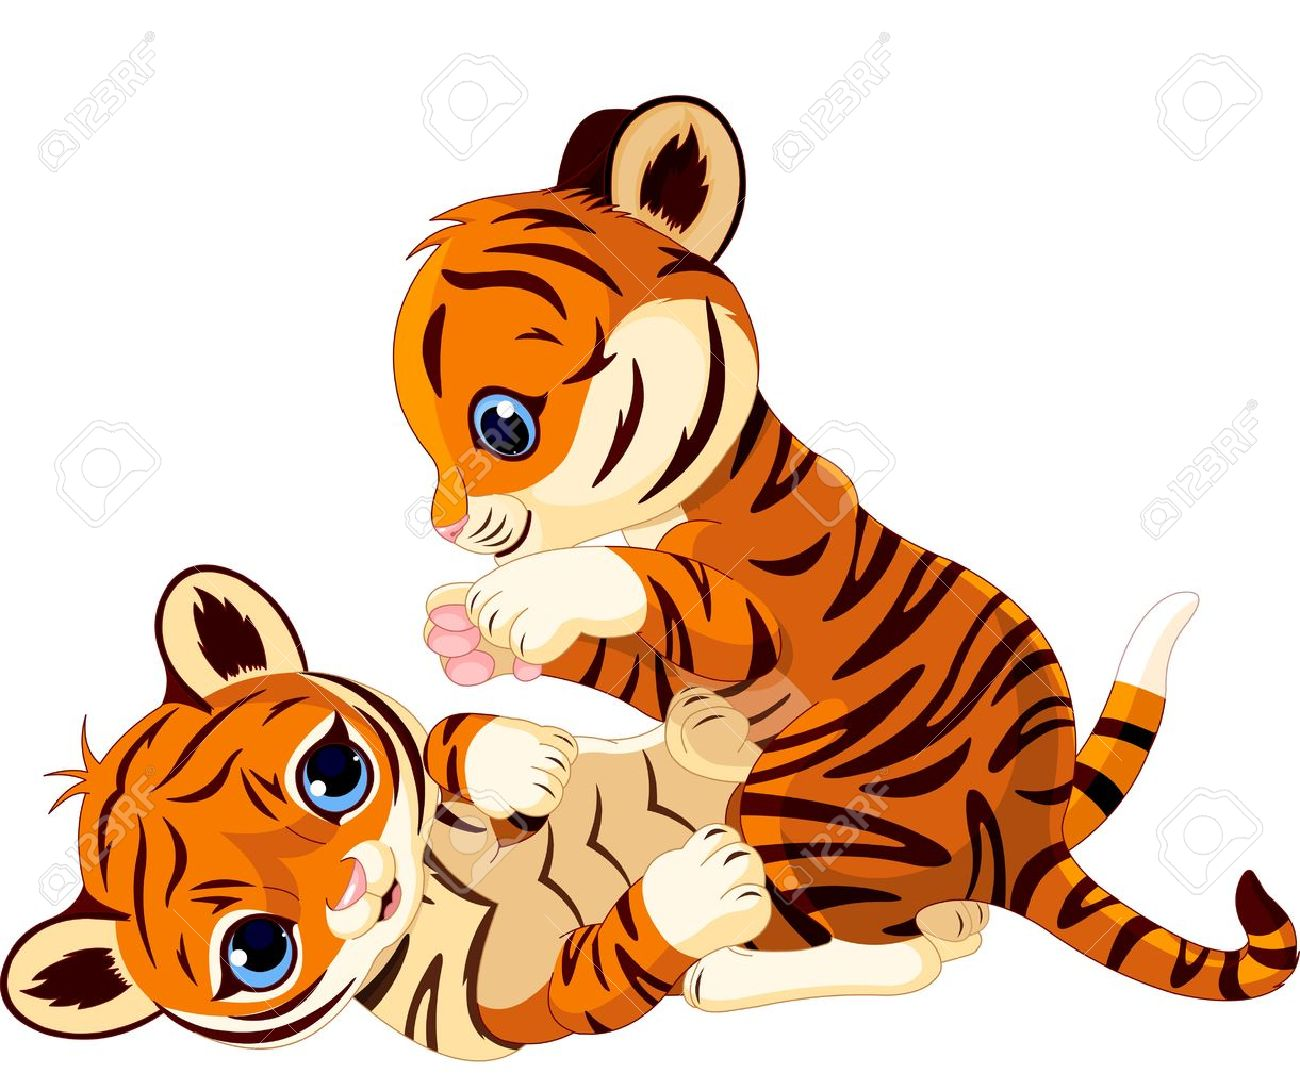 two cute playful tiger cub royalty free cliparts vectors and stock rh 123rf com tiger cub clipart tiger cub scout clipart